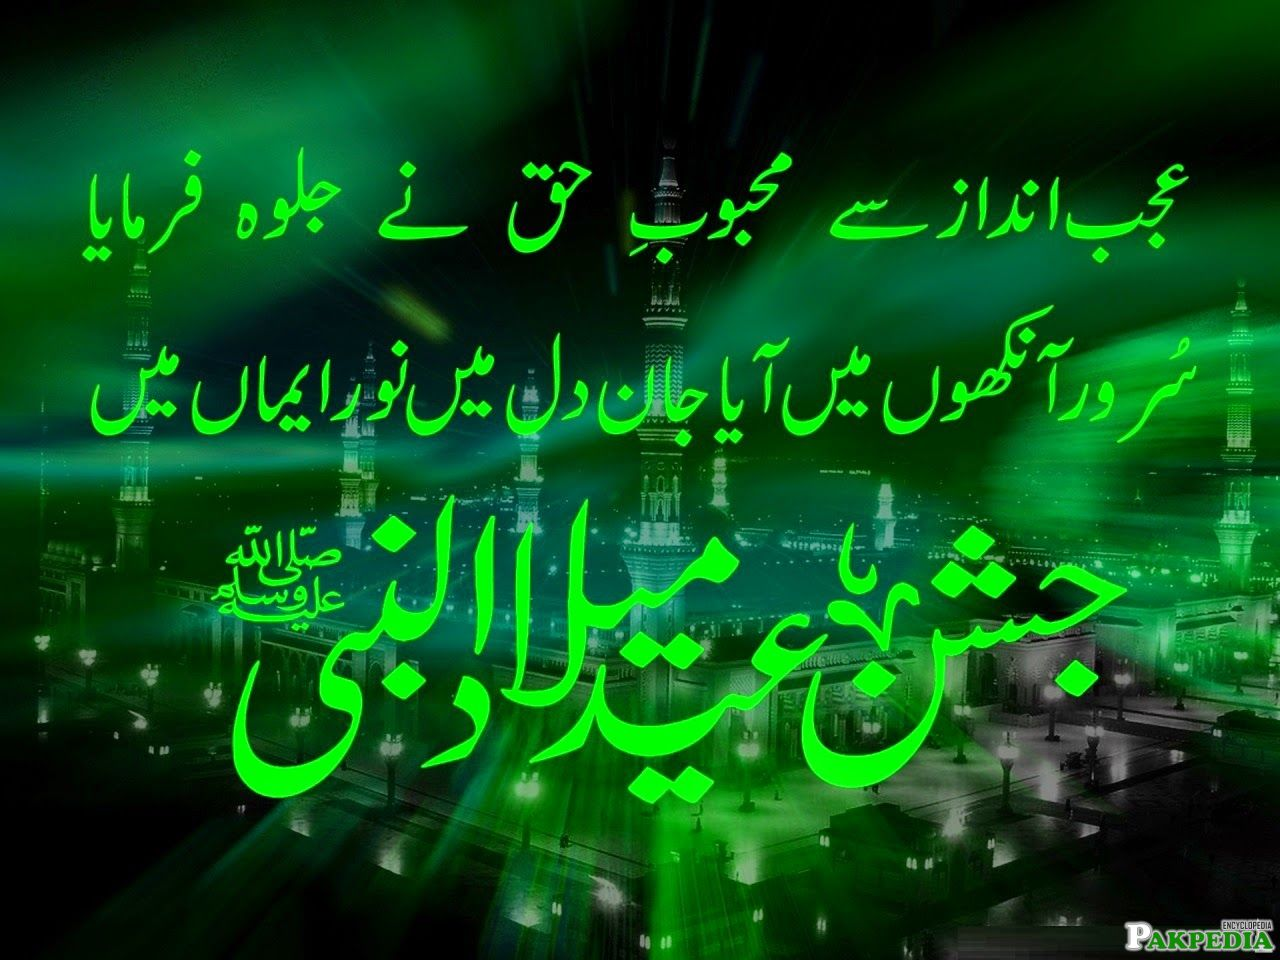 Birthday of Our Beloved Holy Prophet Hazrat Muhammad (SAW)